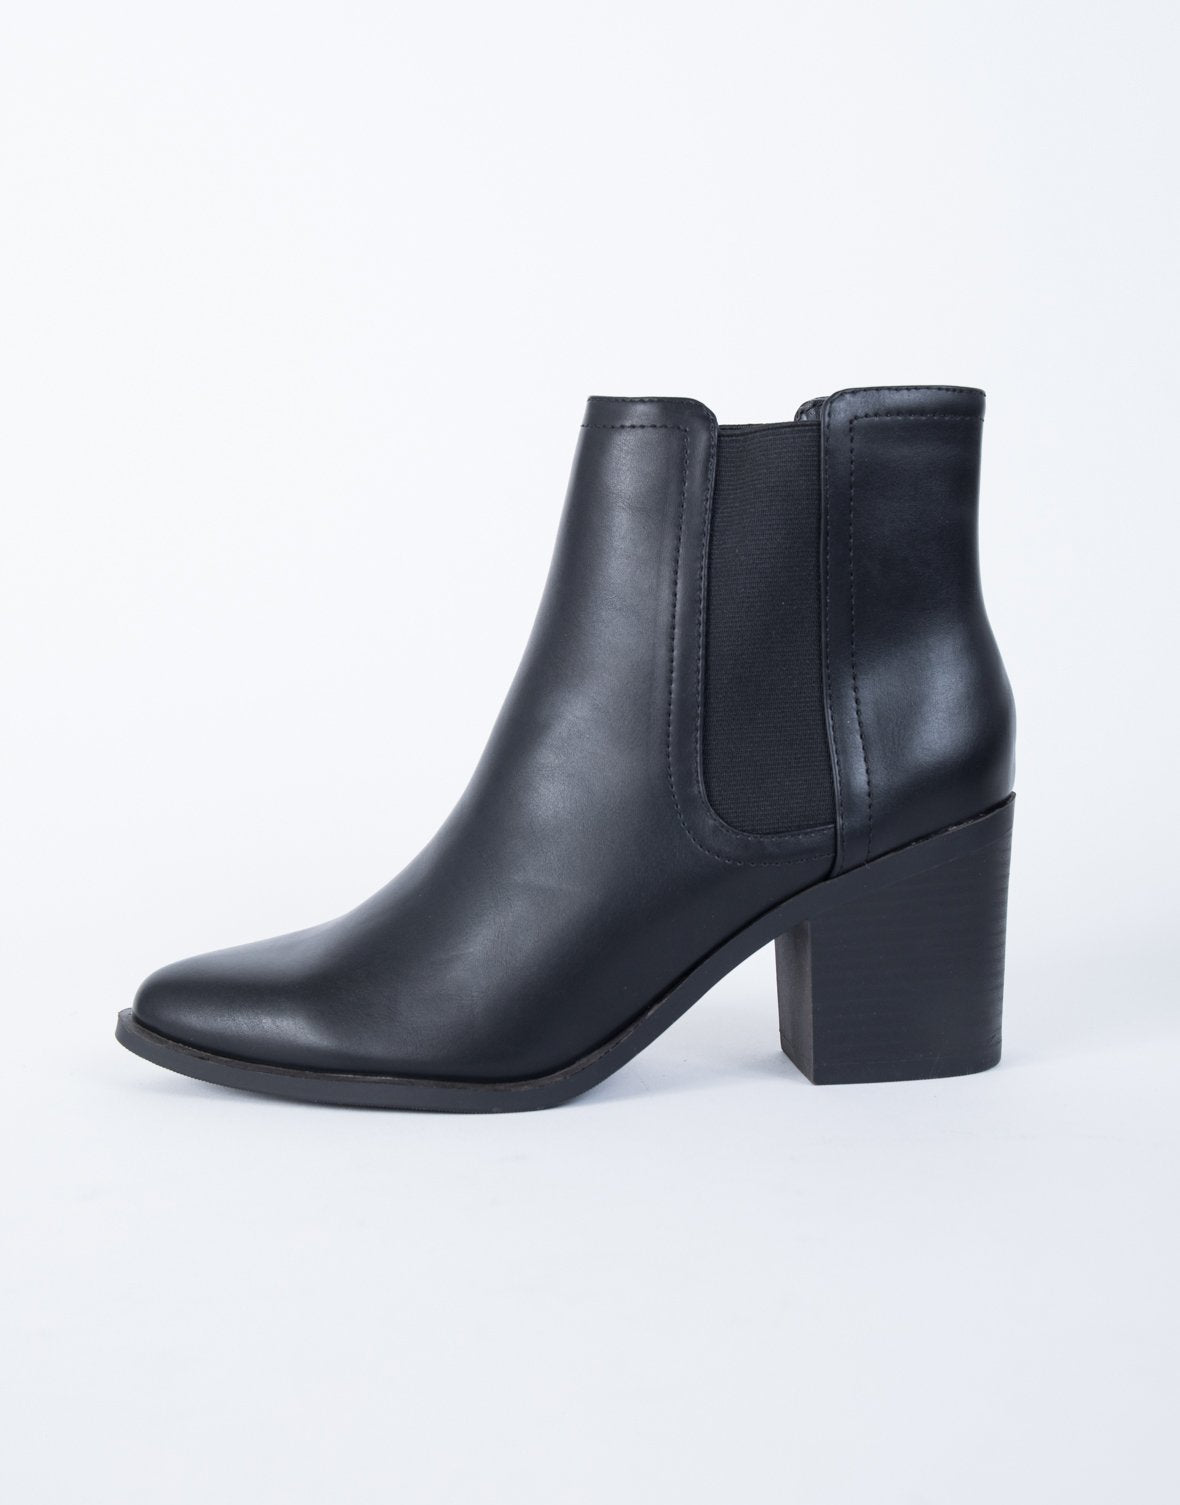 Day to Day Boots - 2020AVE